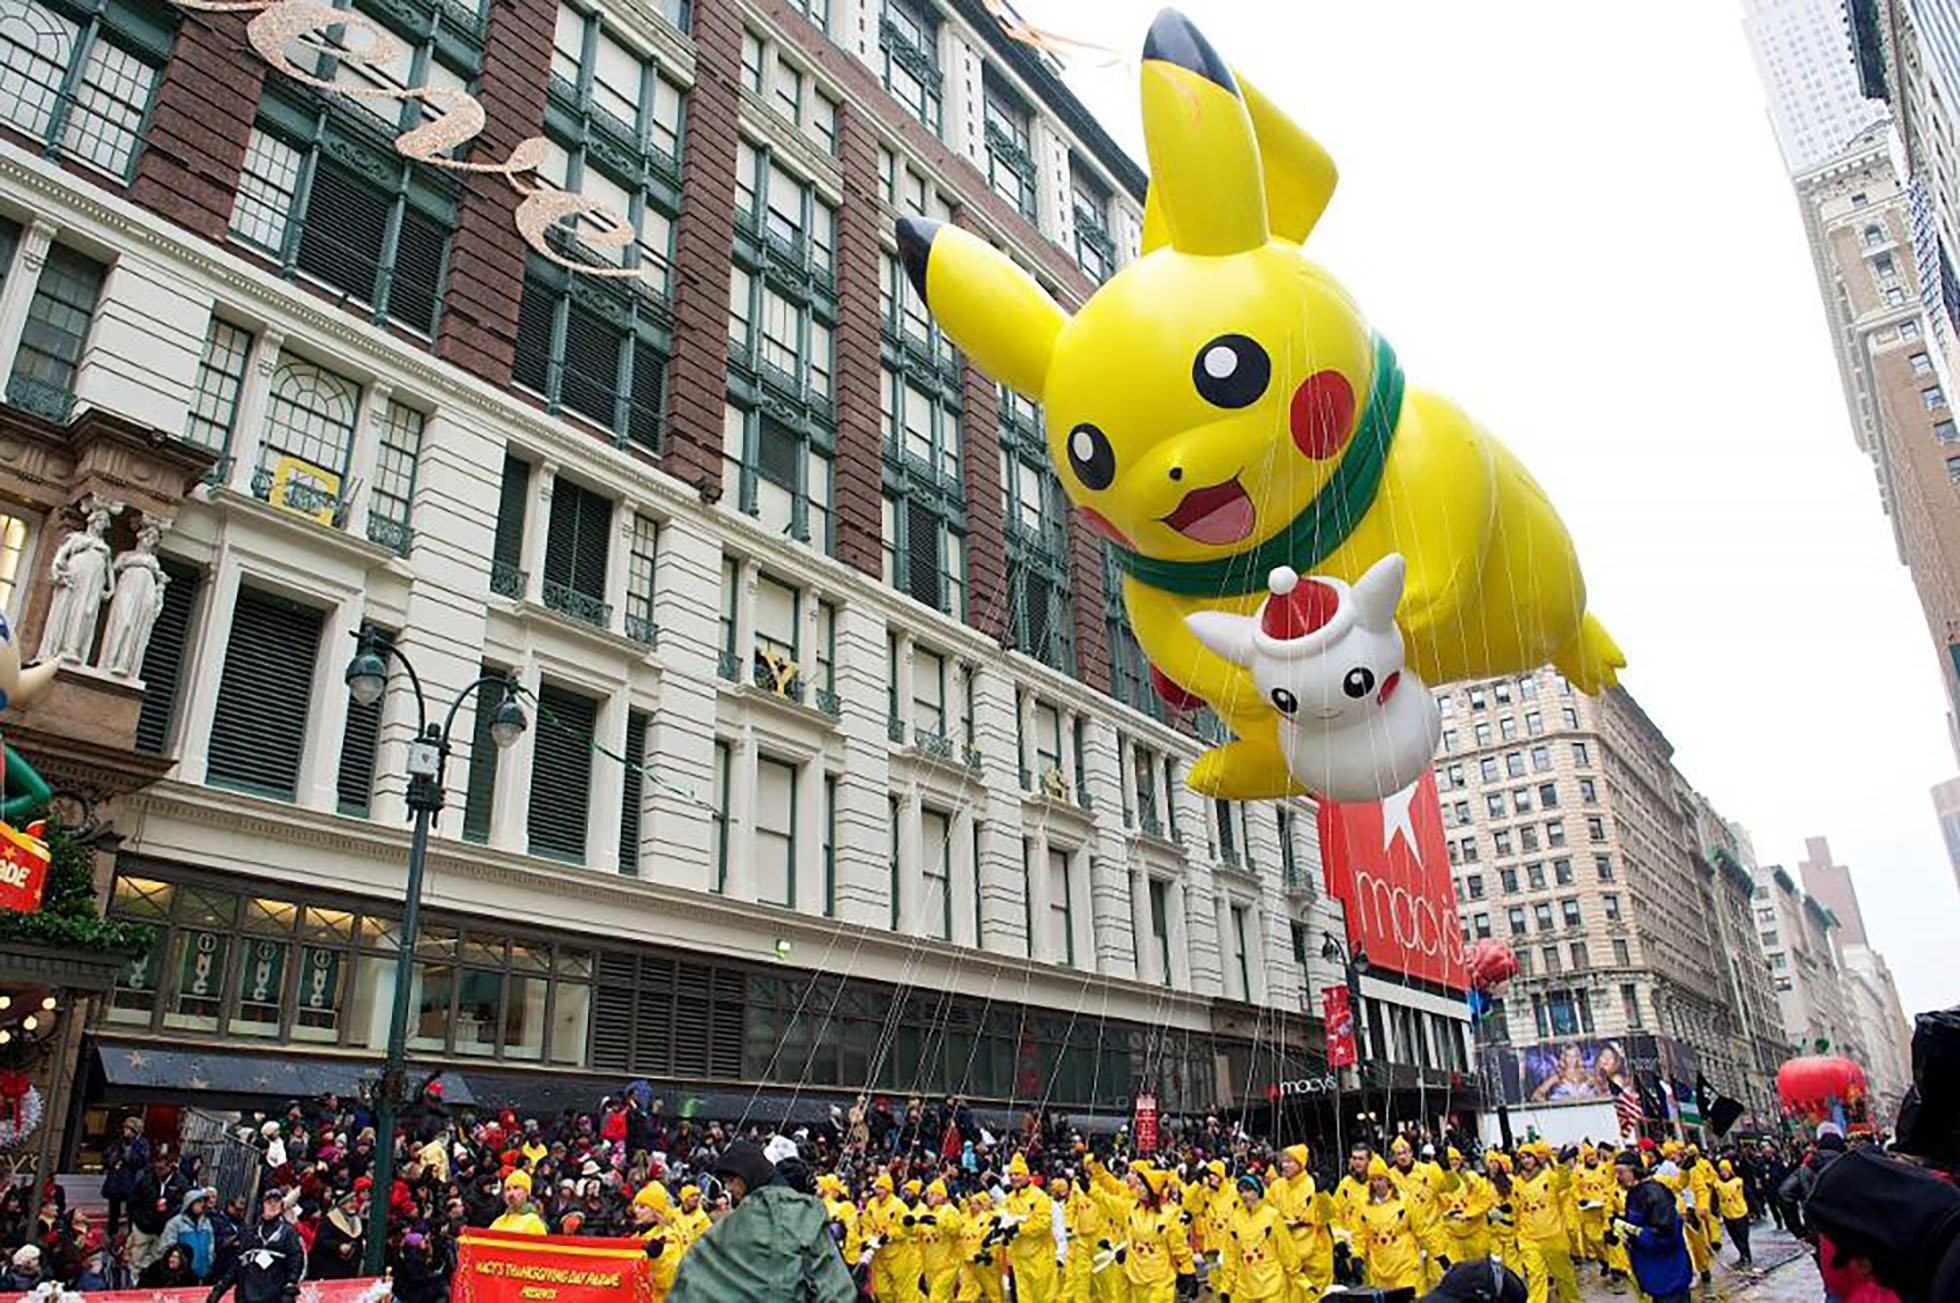 pikachu-in-the-macys-thanksgiving-day-parade-photo-kent-miller-studios-macys-inc-1200x799